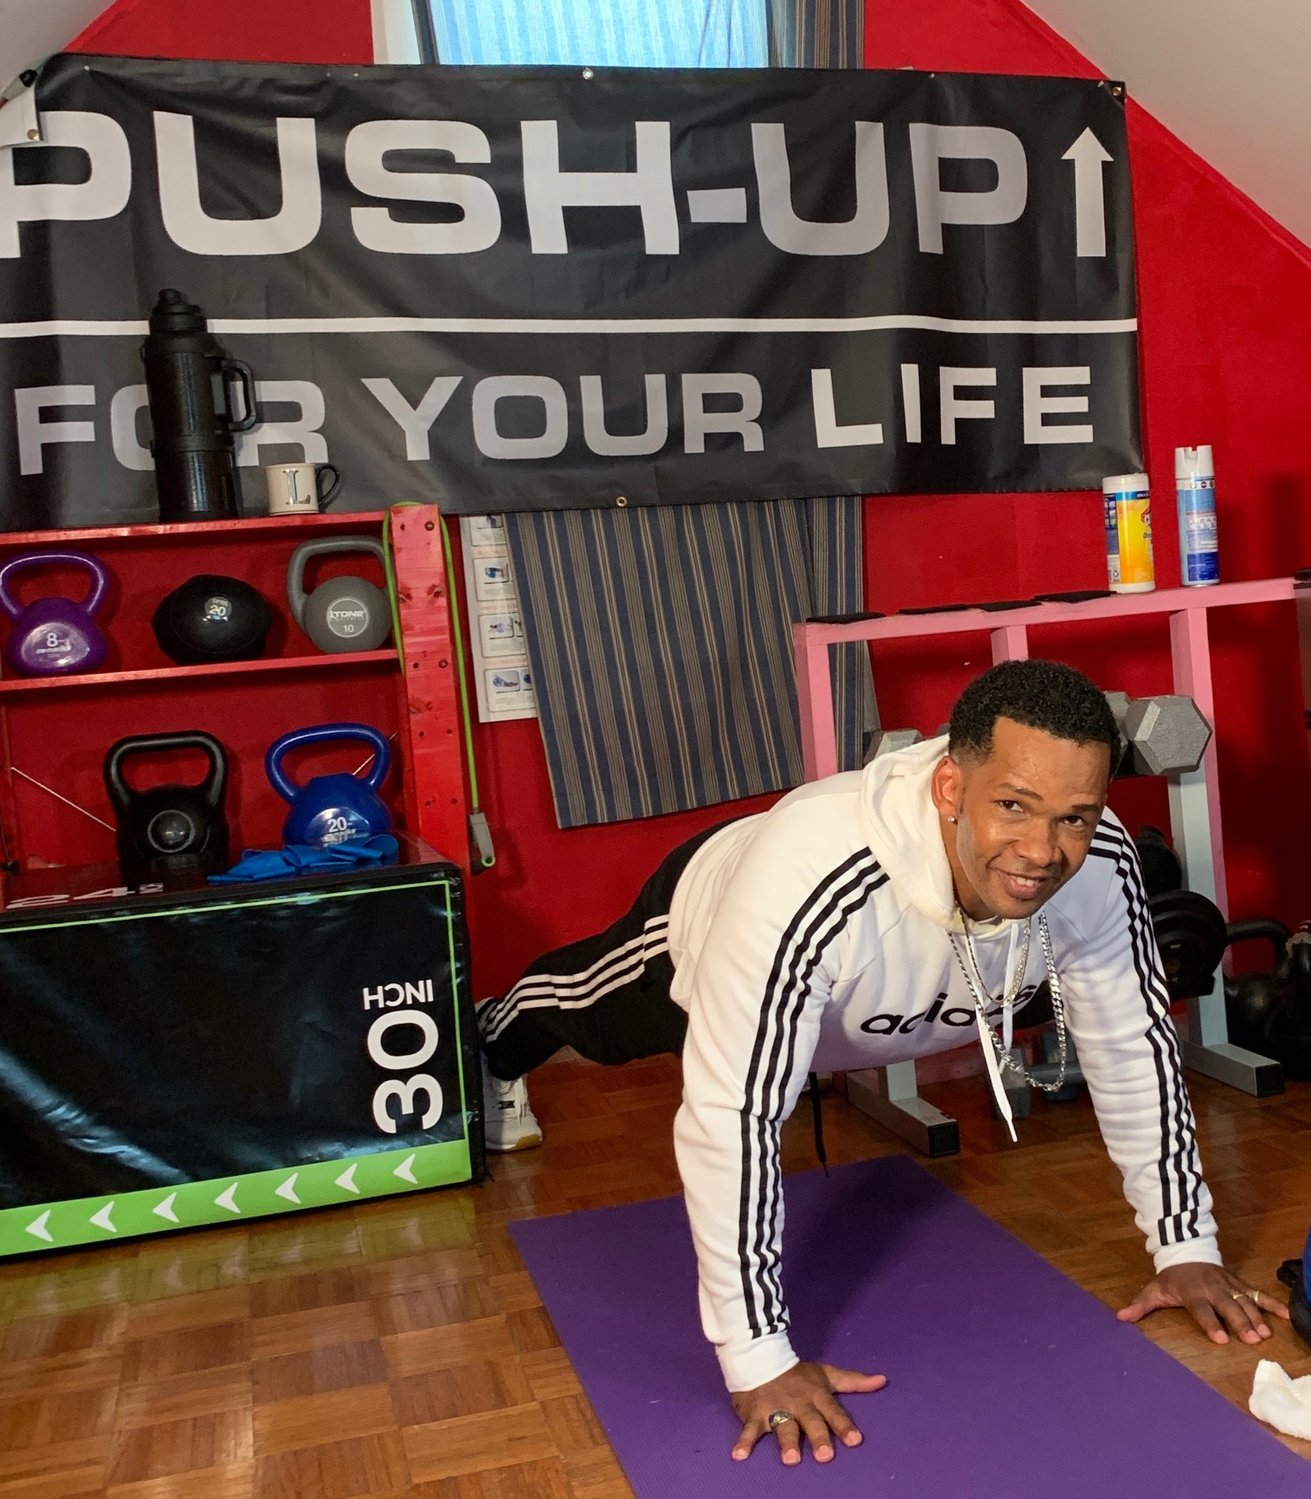 Lancelot Theobald Jr. completed 10,000 push-ups to raise more than $10,000 for the Equal Justice Initiative as part of his Push Up For Your Life campaign.